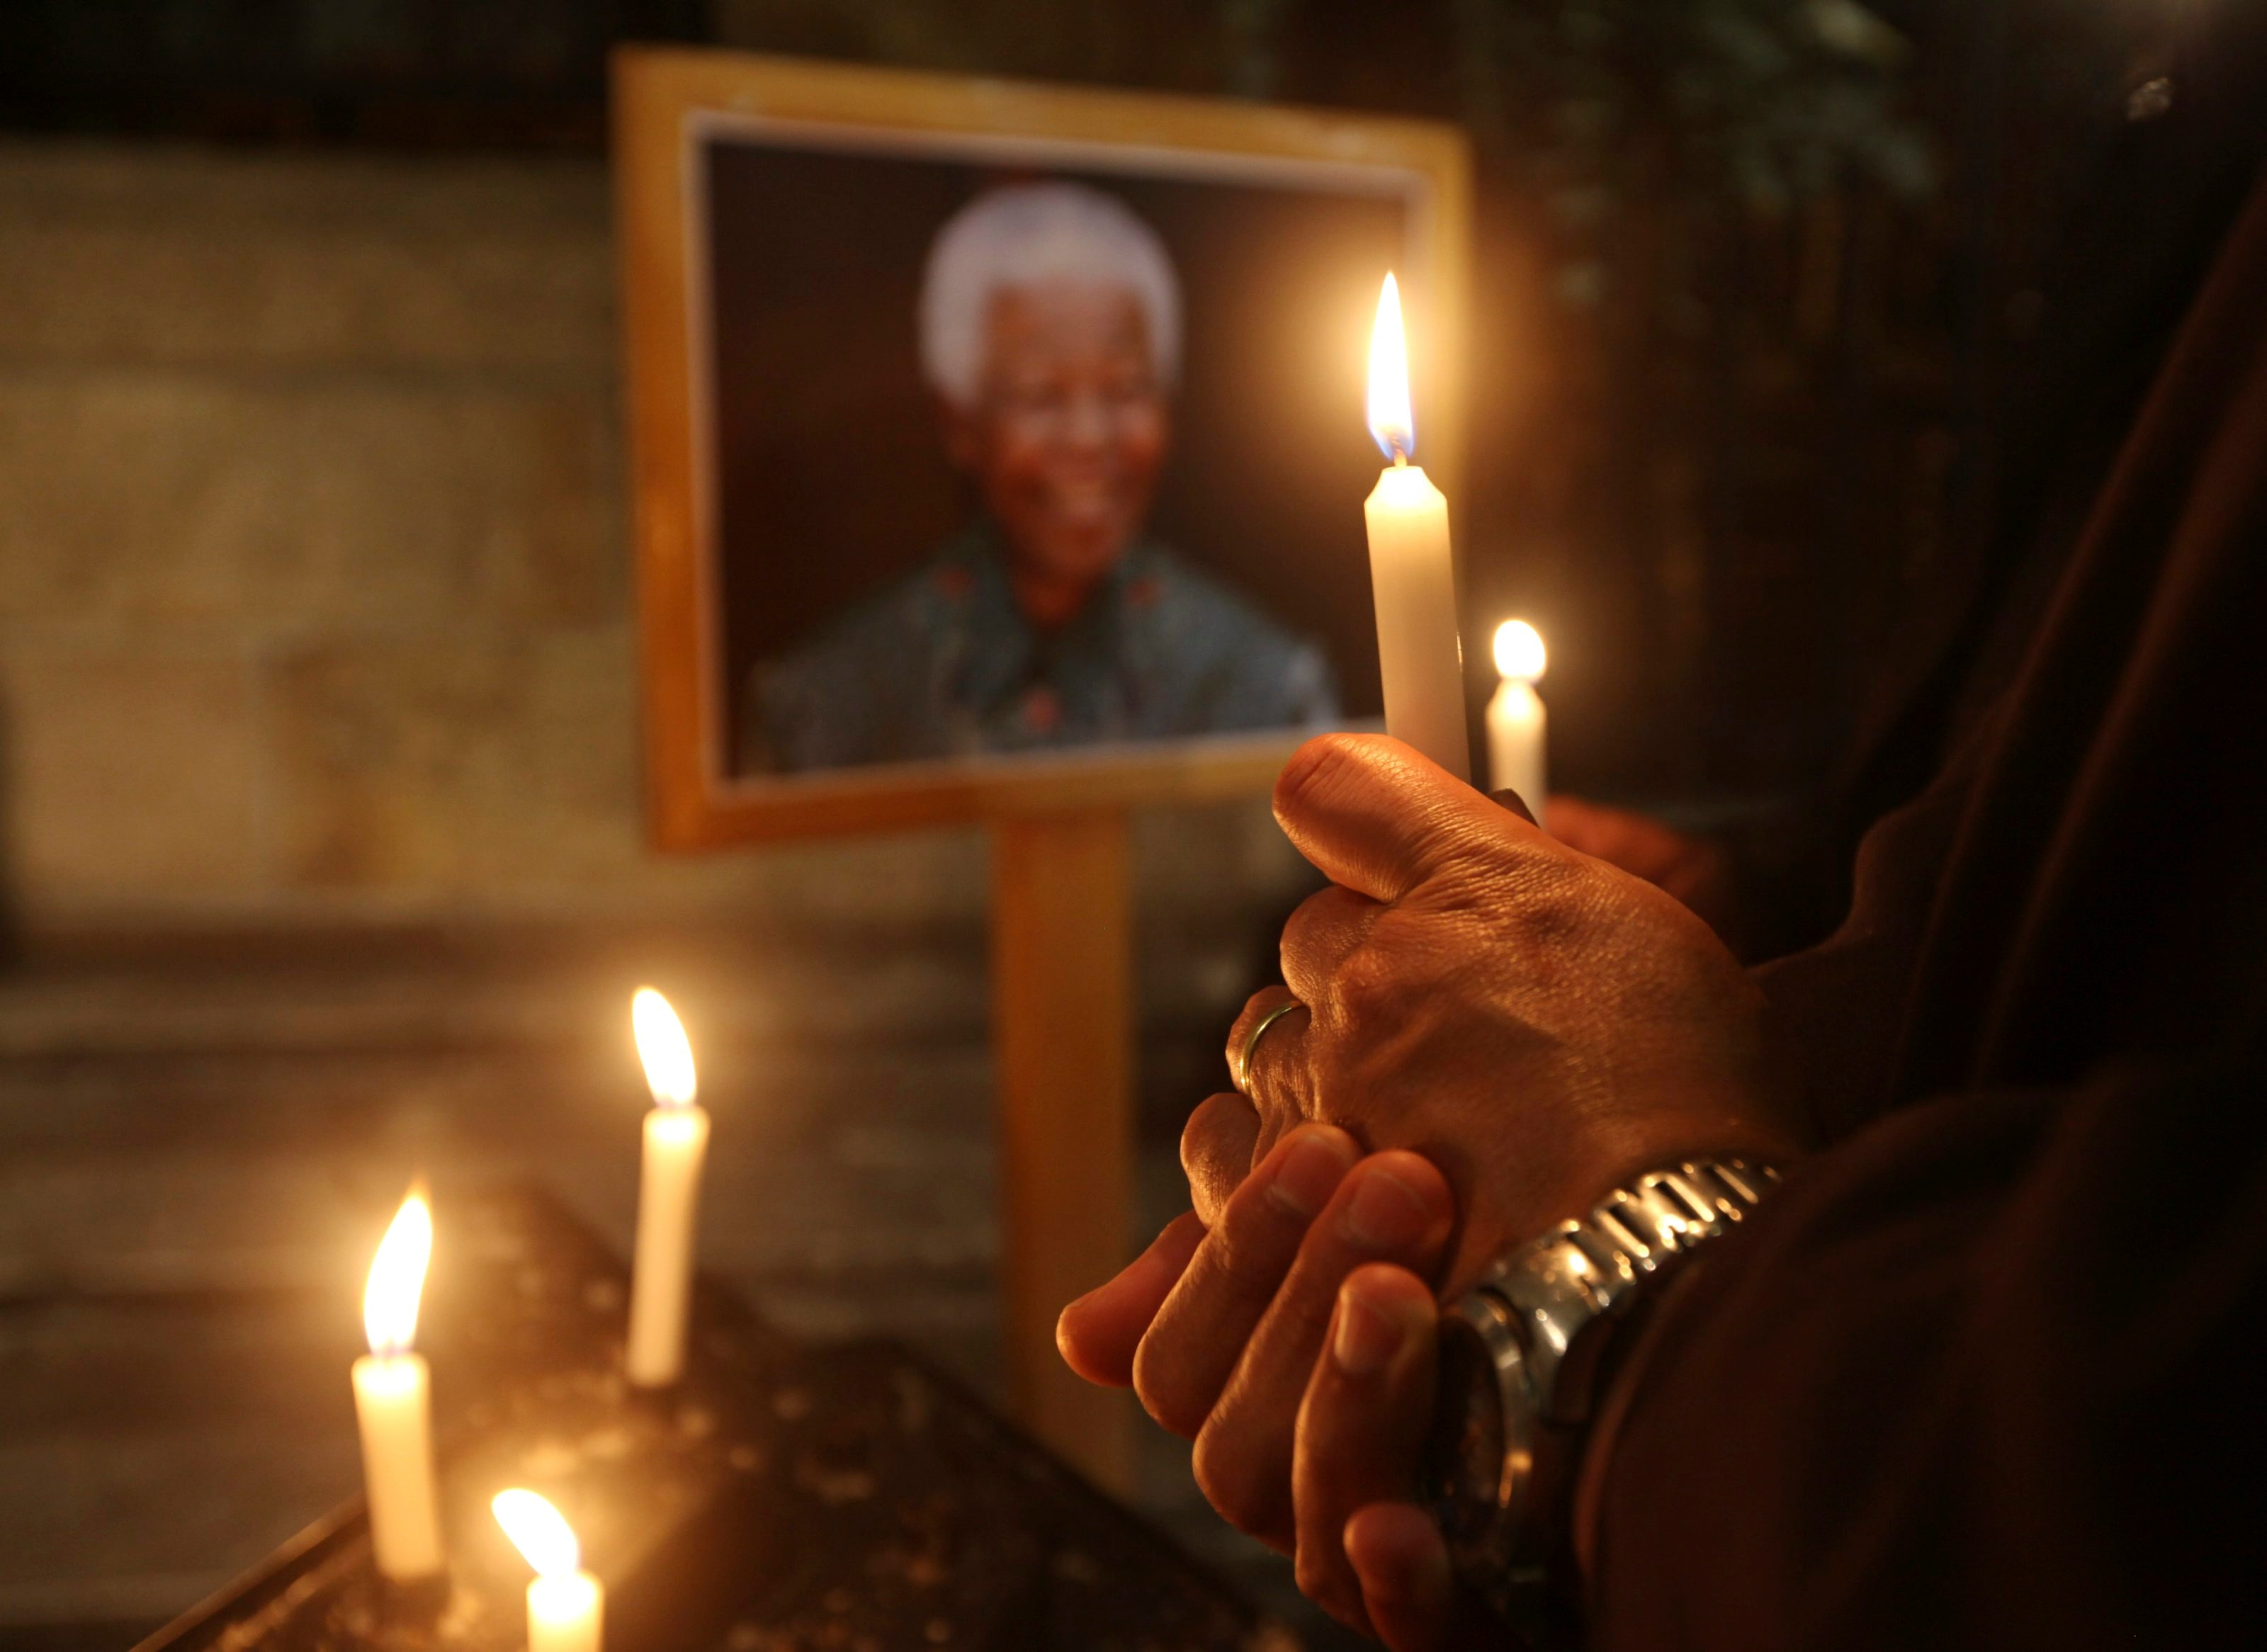 The world's media are waiting for Mandela to die. Here's why he's disappointing them